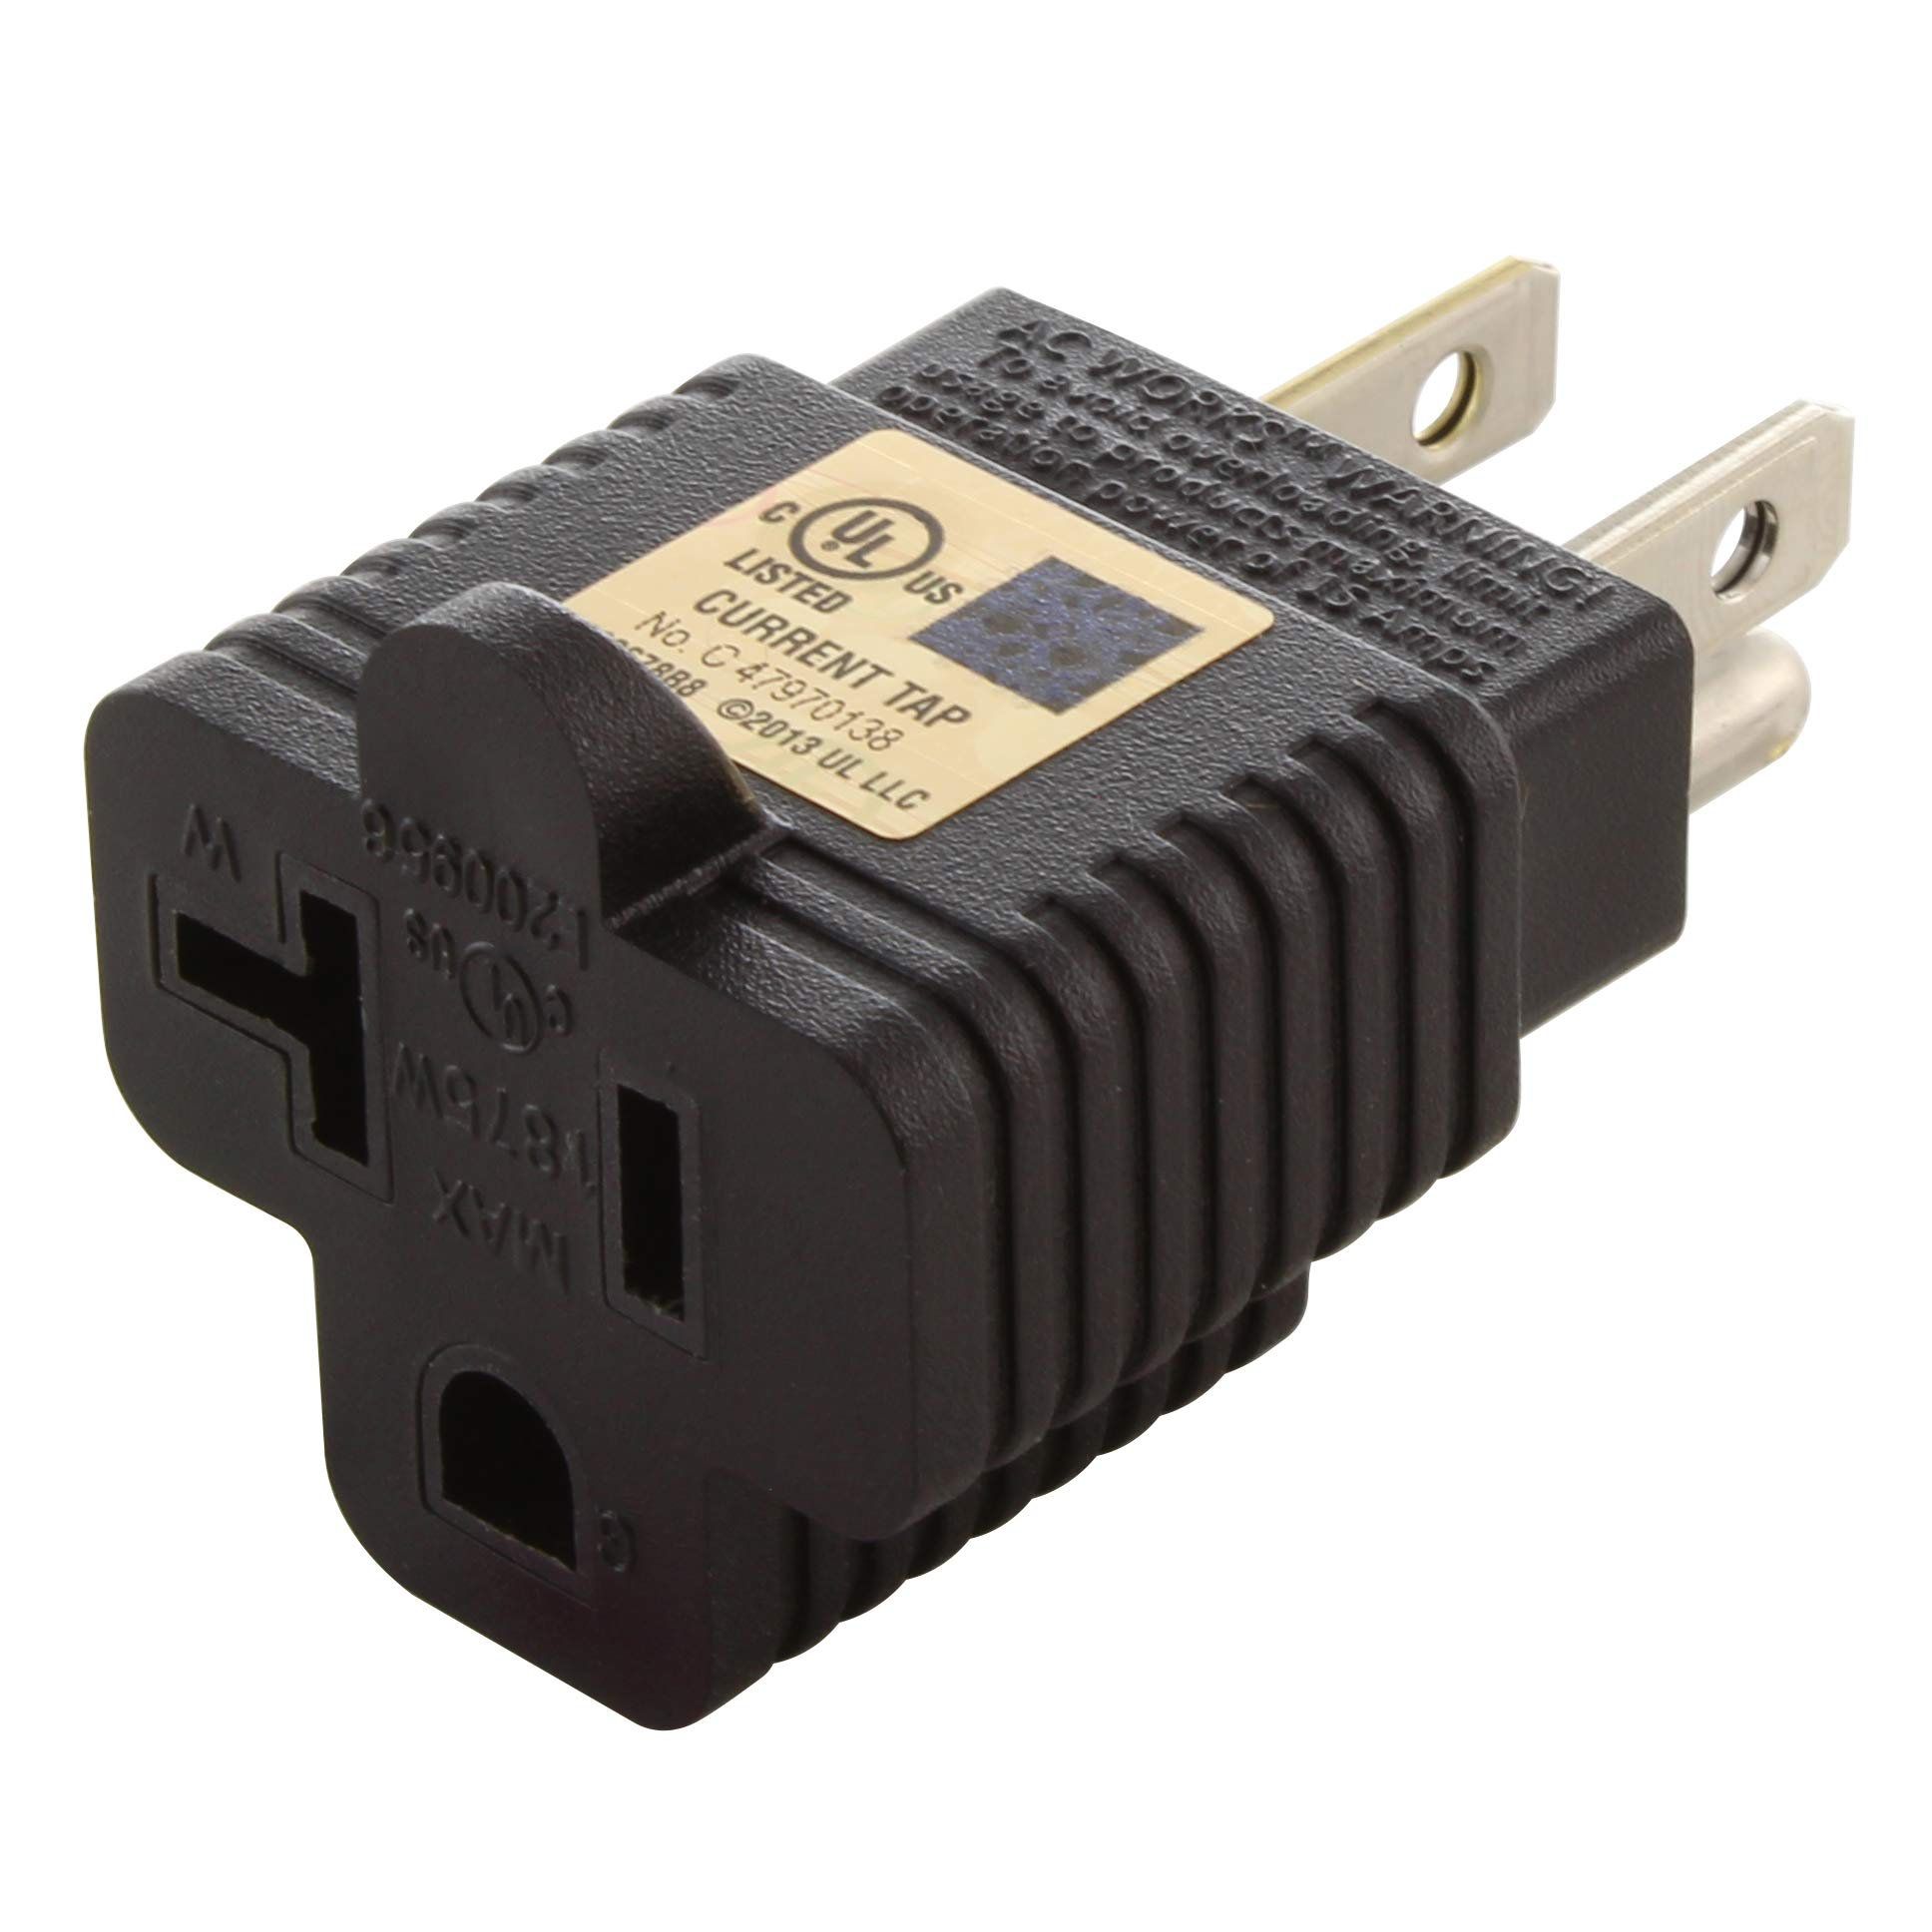 AC WORKS 15 to 20Amp 125Volt T-Blade Adapter (50PK-UL Cert.)